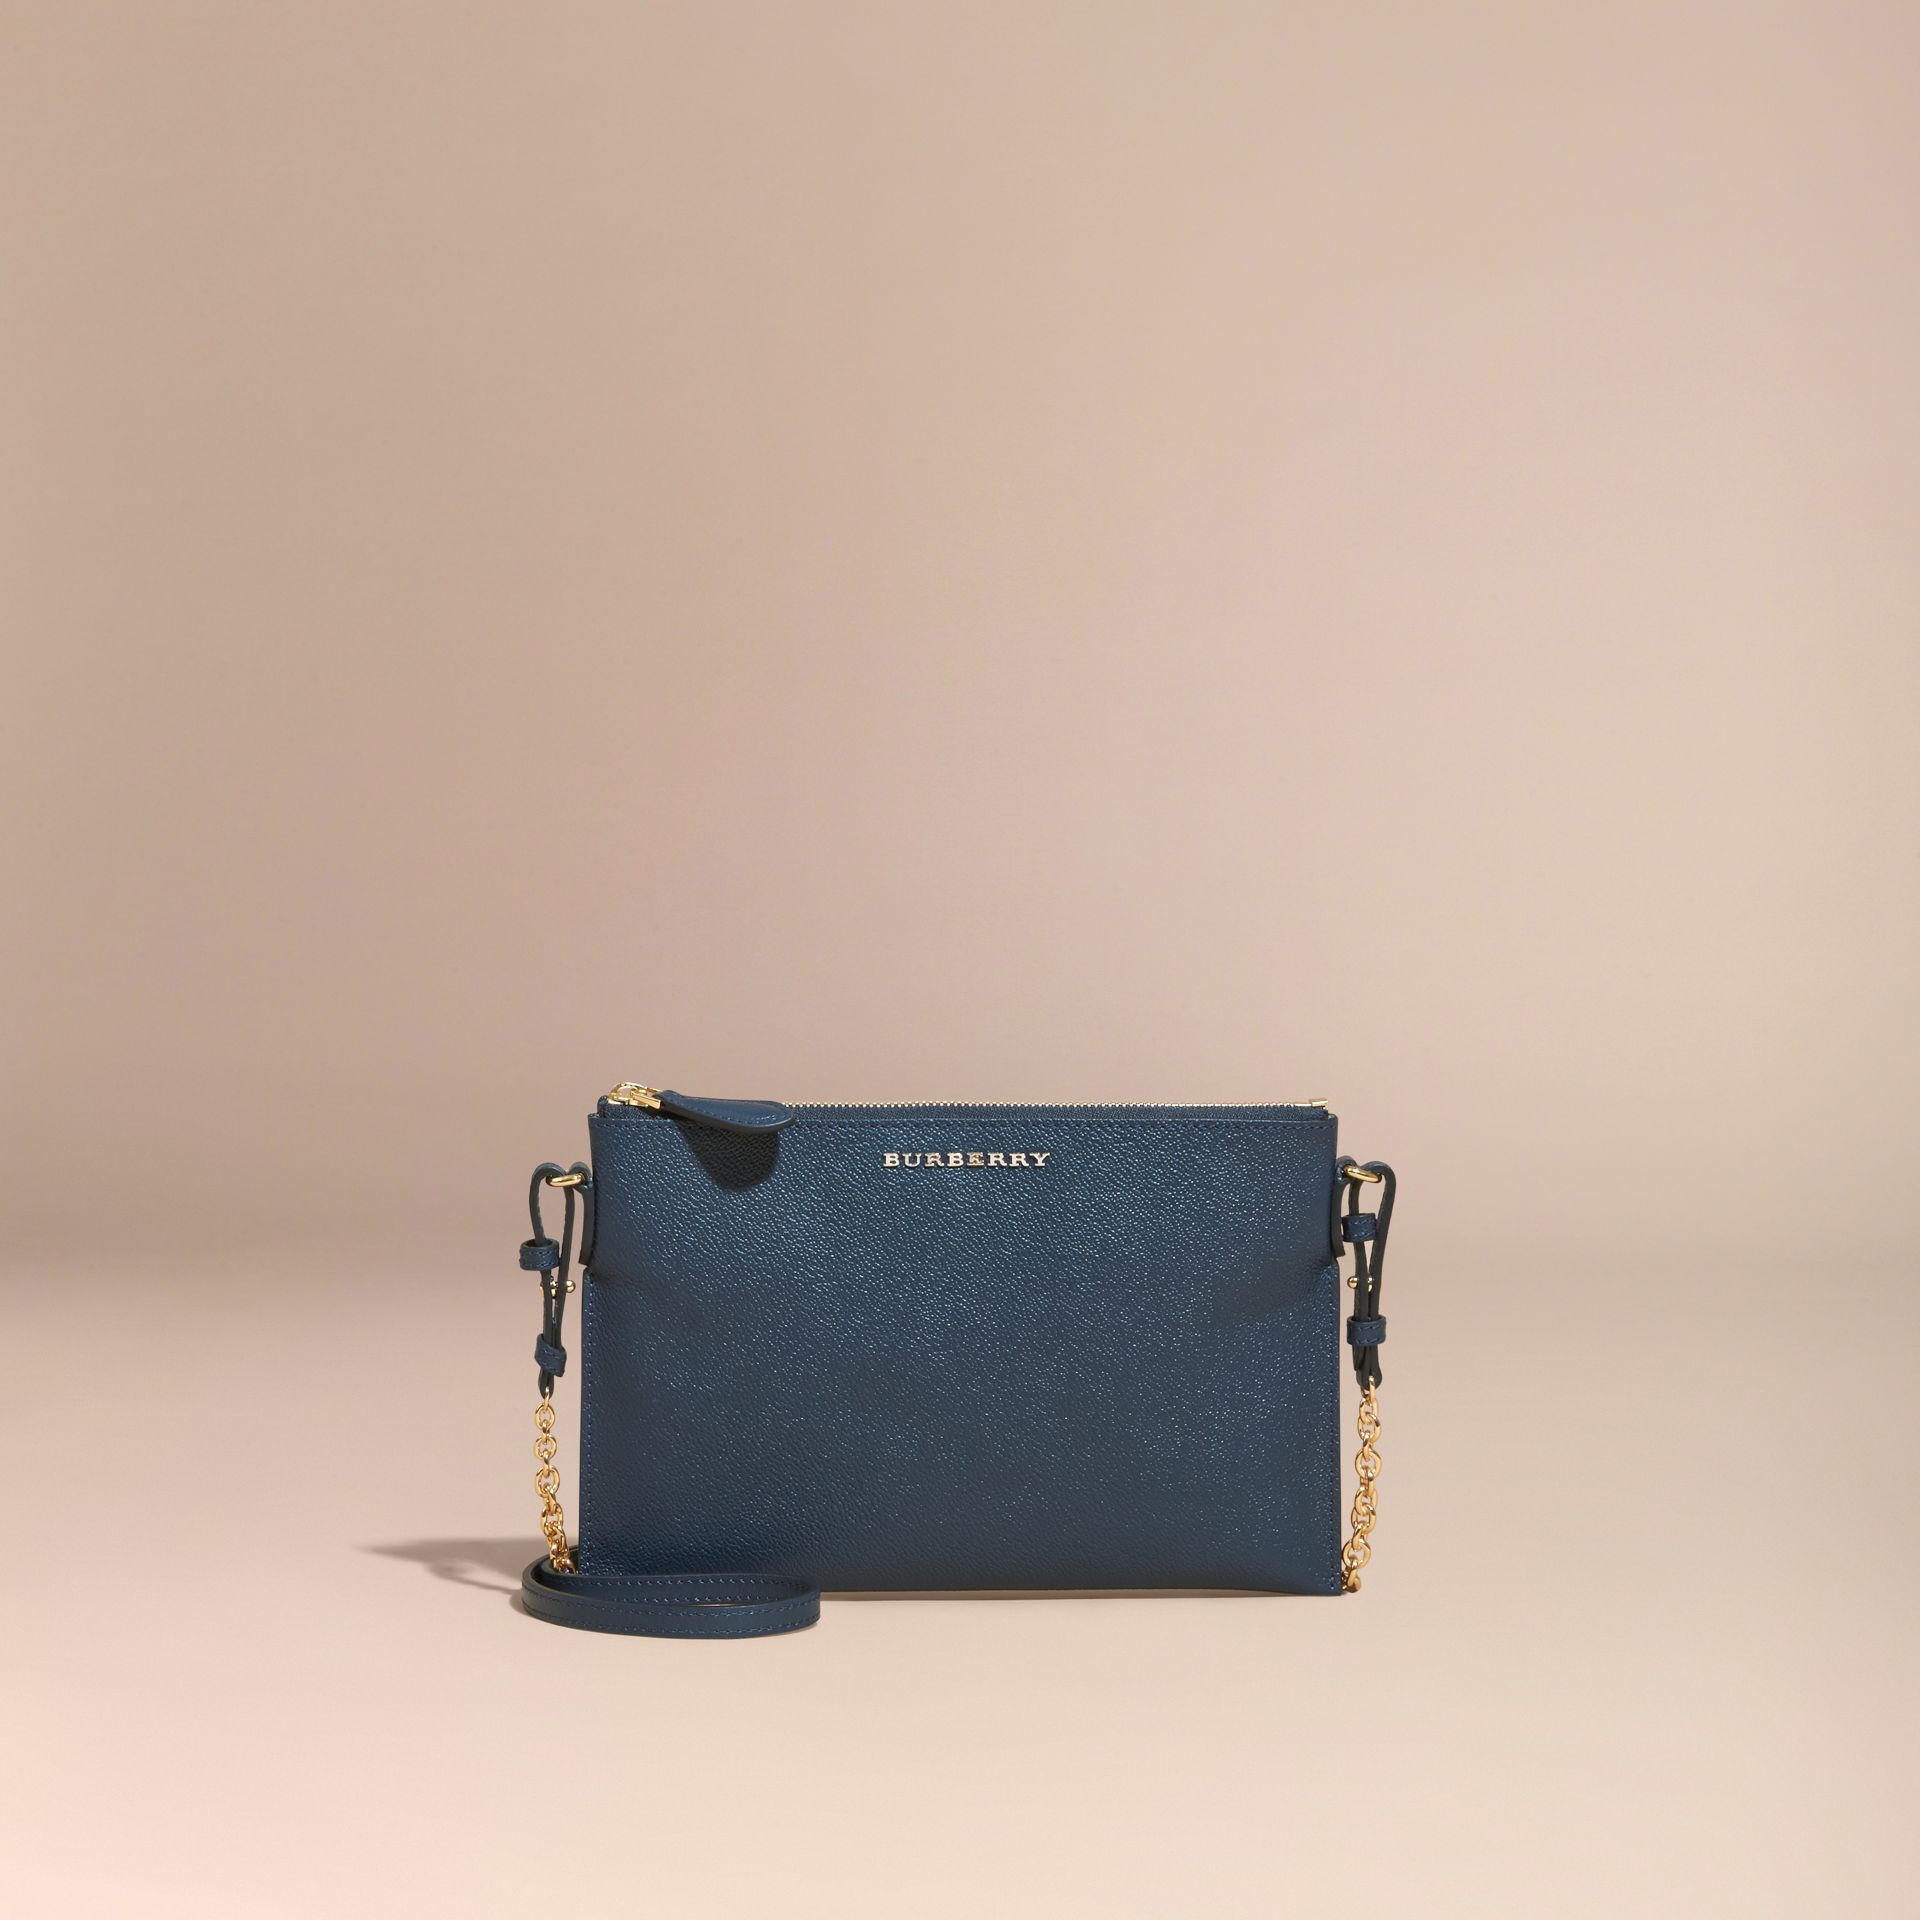 Leather Clutch Bag with Check Lining in Blue Carbon - Women | Burberry - gallery image 9